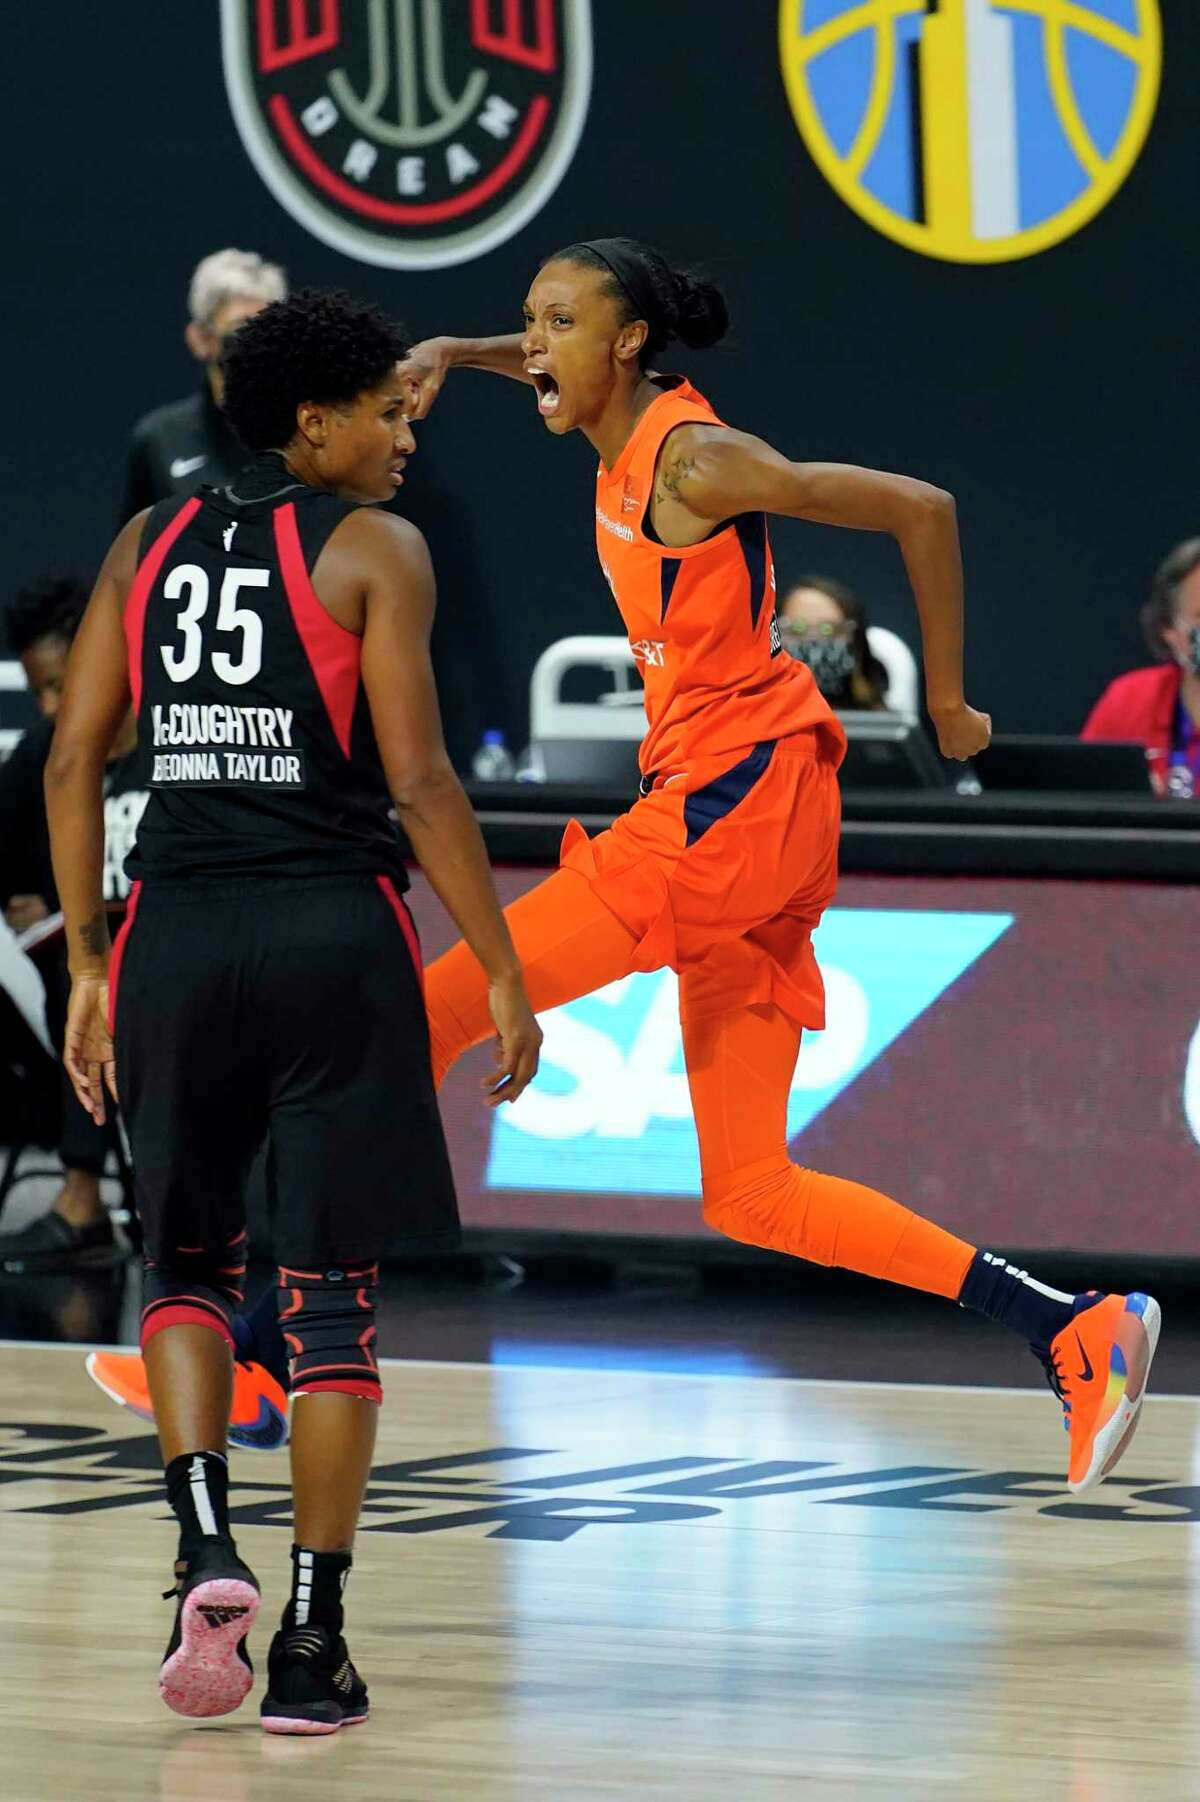 Connecticut Sun forward DeWanna Bonner (24) celebrates in front of Las Vegas Aces forward Angel McCoughtry (35) after making a three-point shot during the second half of Game 2 of a WNBA basketball semifinal round playoff game Tuesday, Sept. 22, 2020, in Bradenton, Fla. (AP Photo/Chris O'Meara)